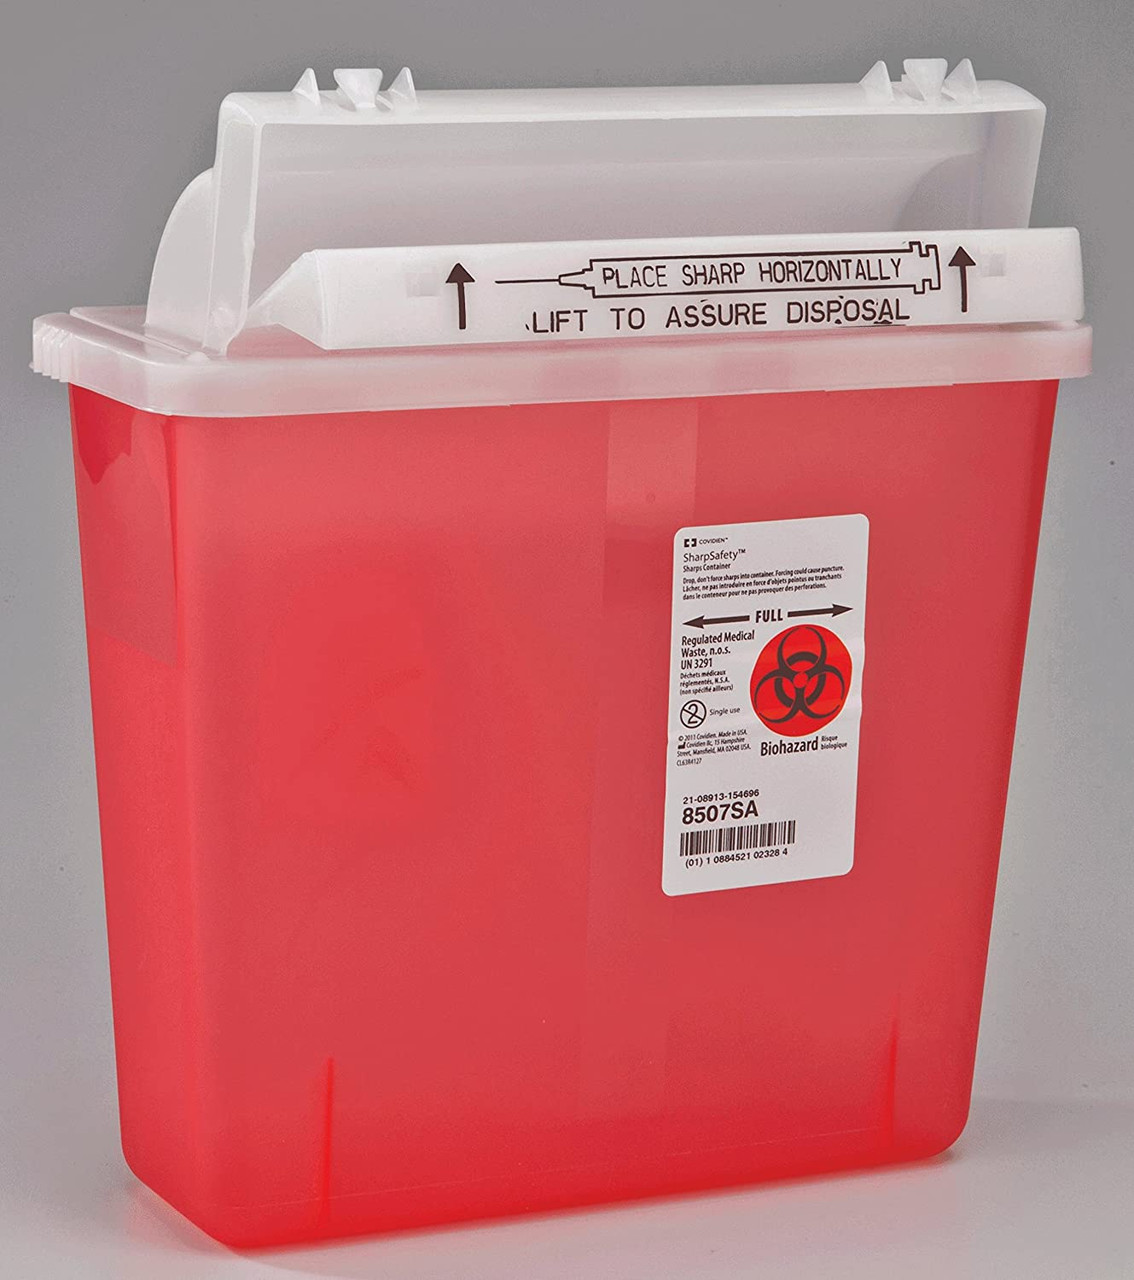 5 Quart Sharps Container #8507SA  by Kendall / Covidien